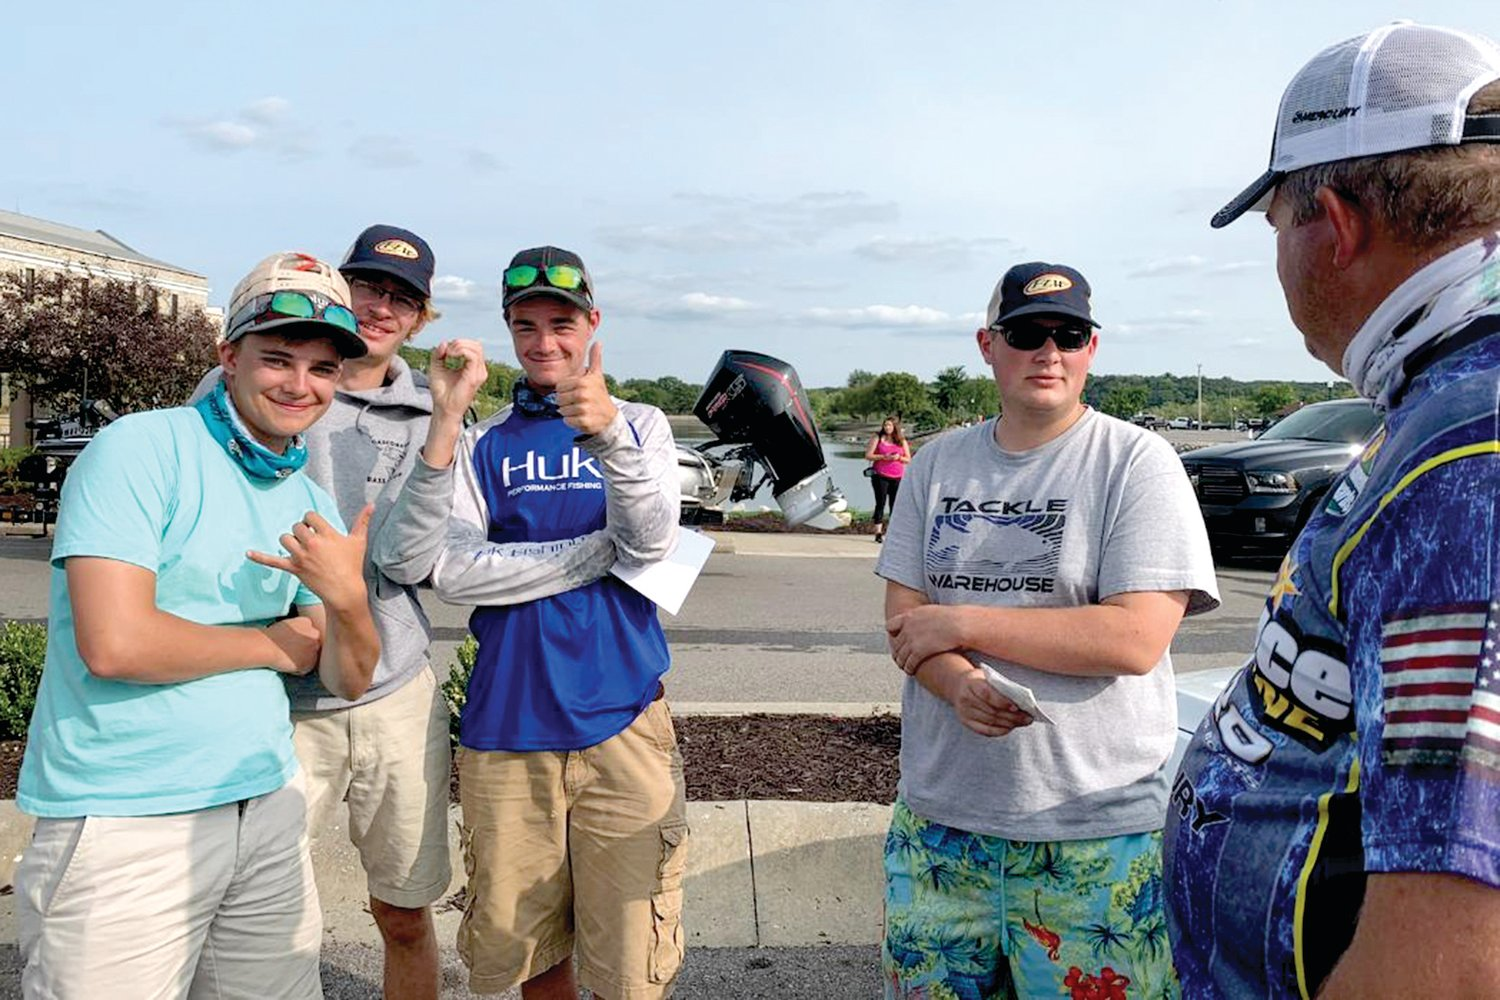 Co-anglers Noah Dickneite of Freeburg, Dalton Luebbert of Rich Fountain, Brayden Schaben of Meta, and Andrew Eisterhold of Rich Fountain gather for the weigh-in at FLW bass tournament at Lake of the Ozarks Sunday with Andre Dickneite. Noah Dickneite earned 14th place while moving up to fifth place in points on the season. Schaben with his performance, which included a 3.8-pound keeper, moved to fourth place in points, while Eisterhold also earned a check for his outing.